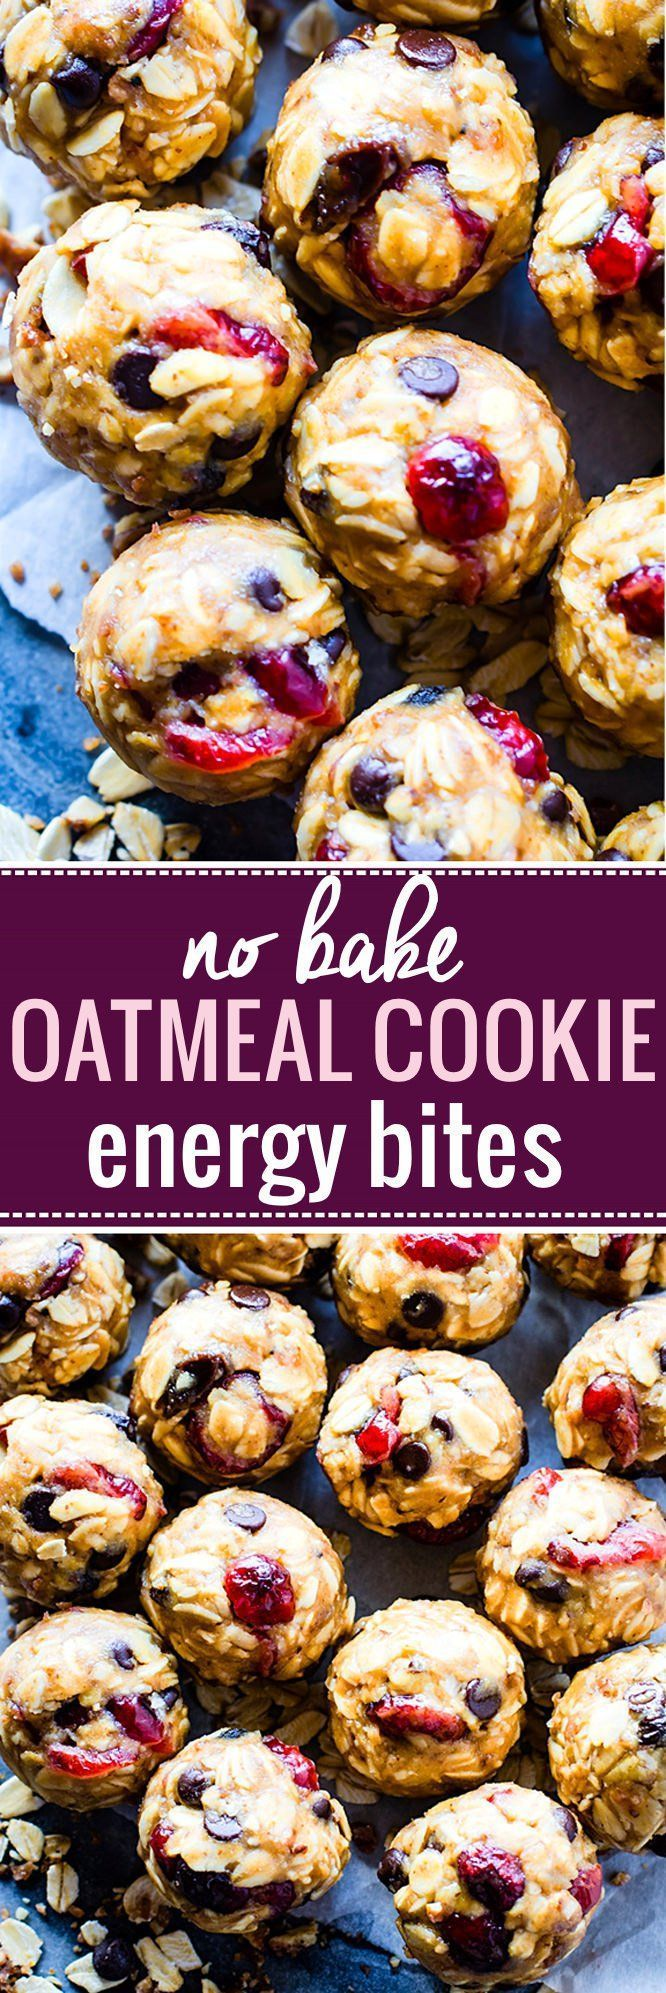 Gluten free No Bake Oatmeal Cookie Energy Bites for a healthy lunchbox treat…